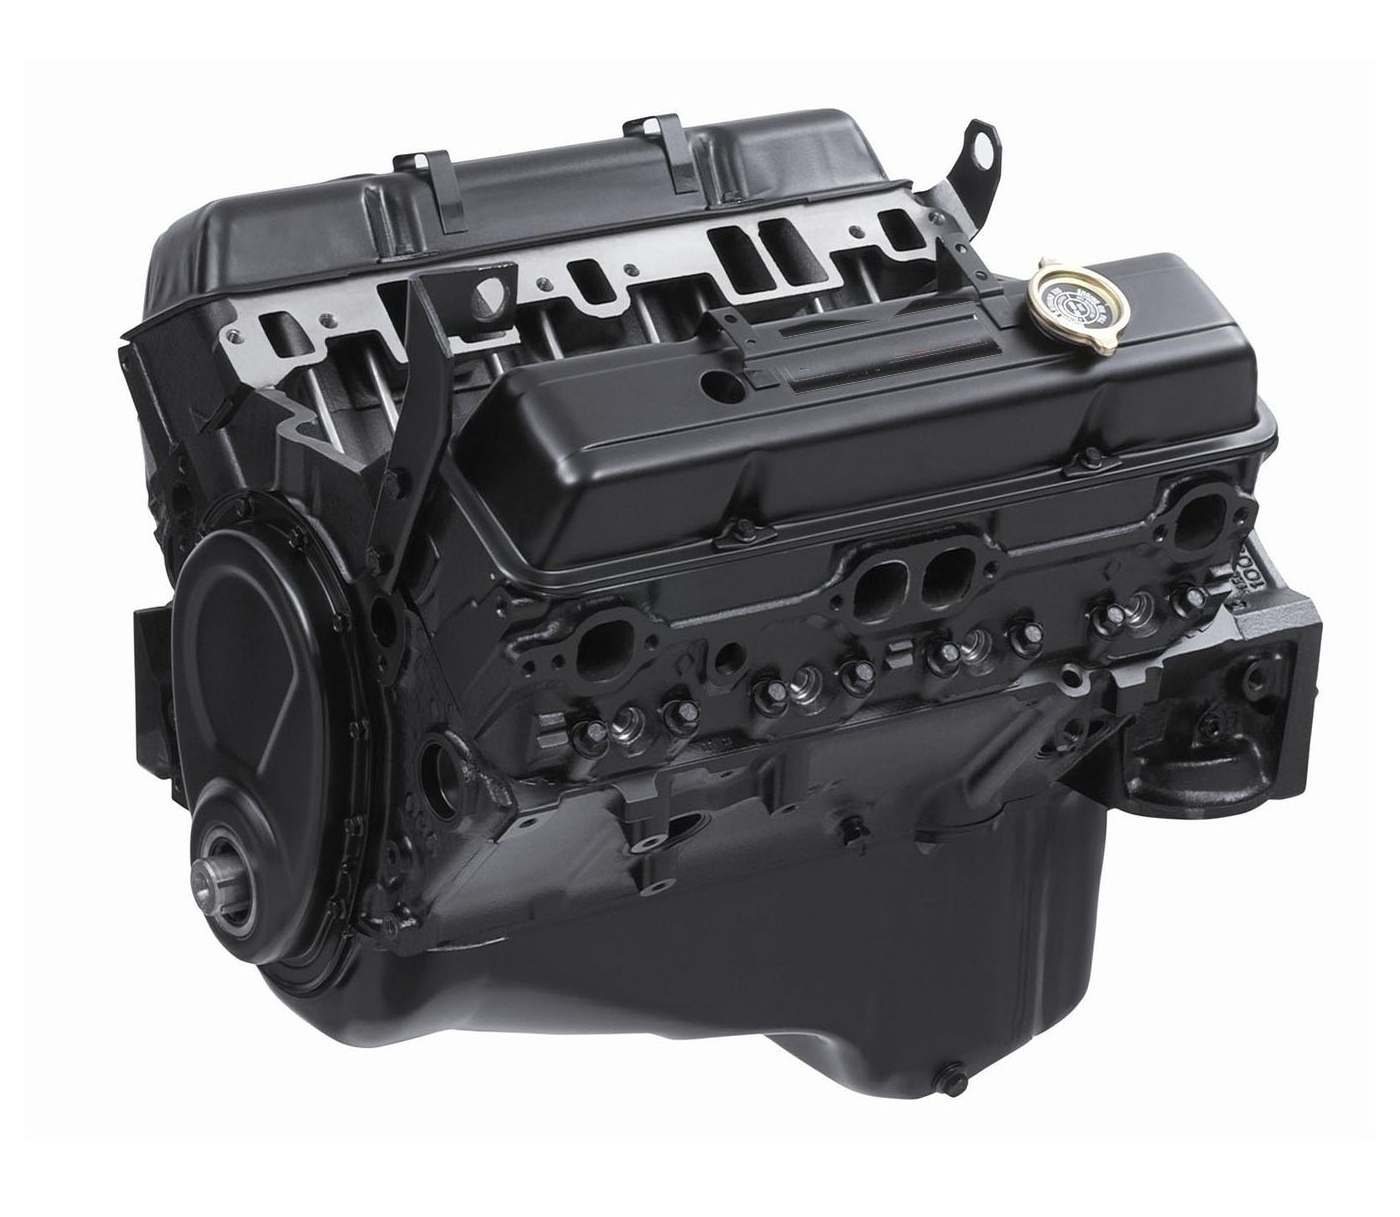 5.7L Reman Long Block Engine For GMC G3500